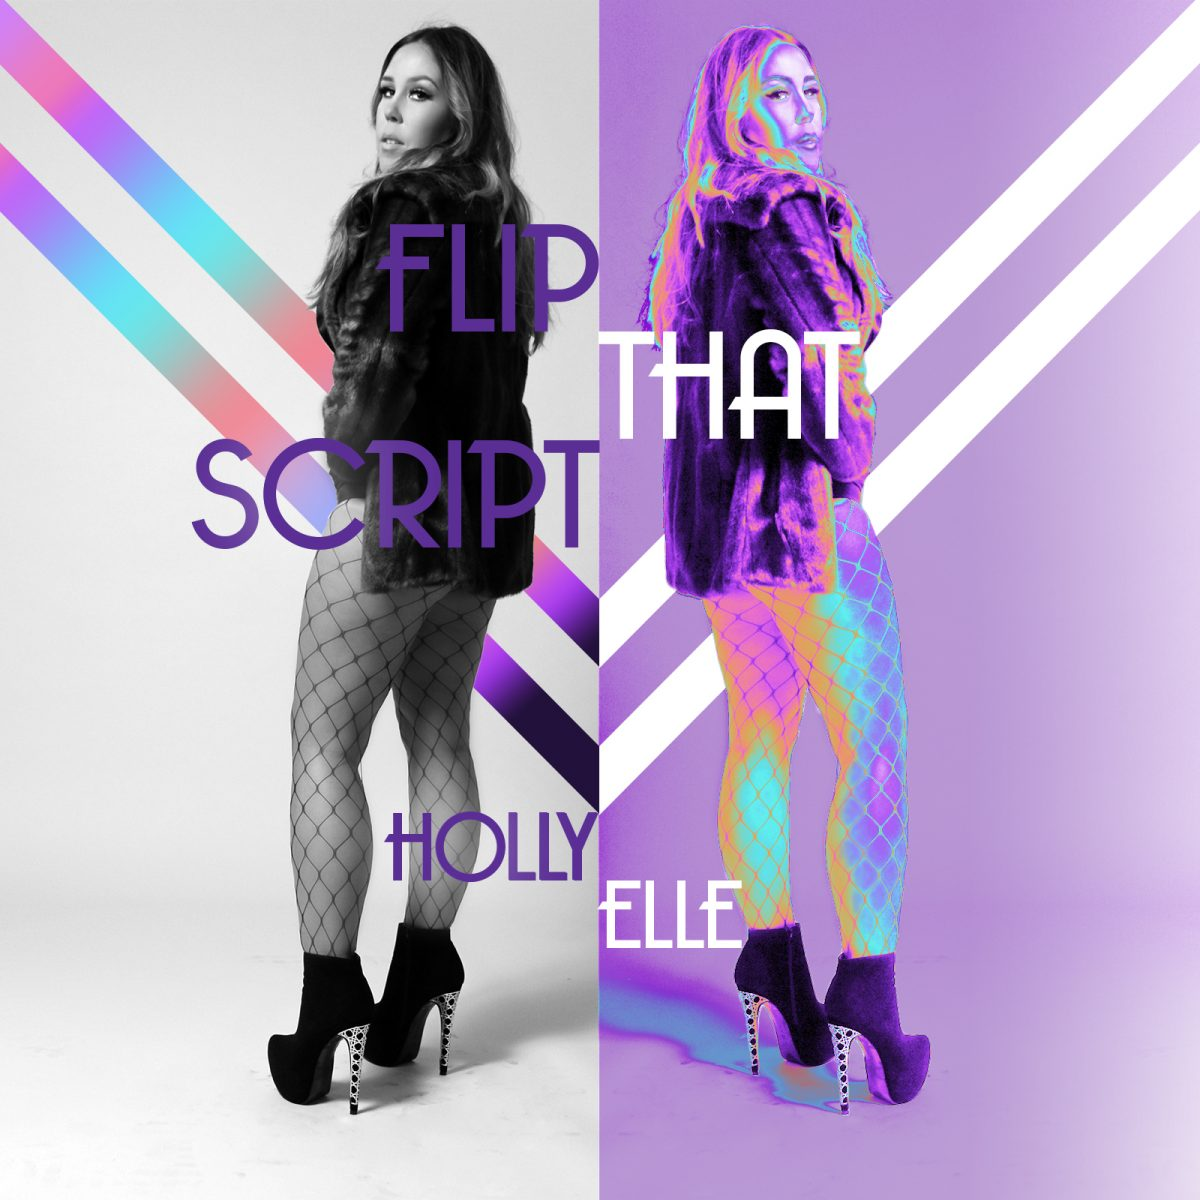 Holly Elle – Flip That Script